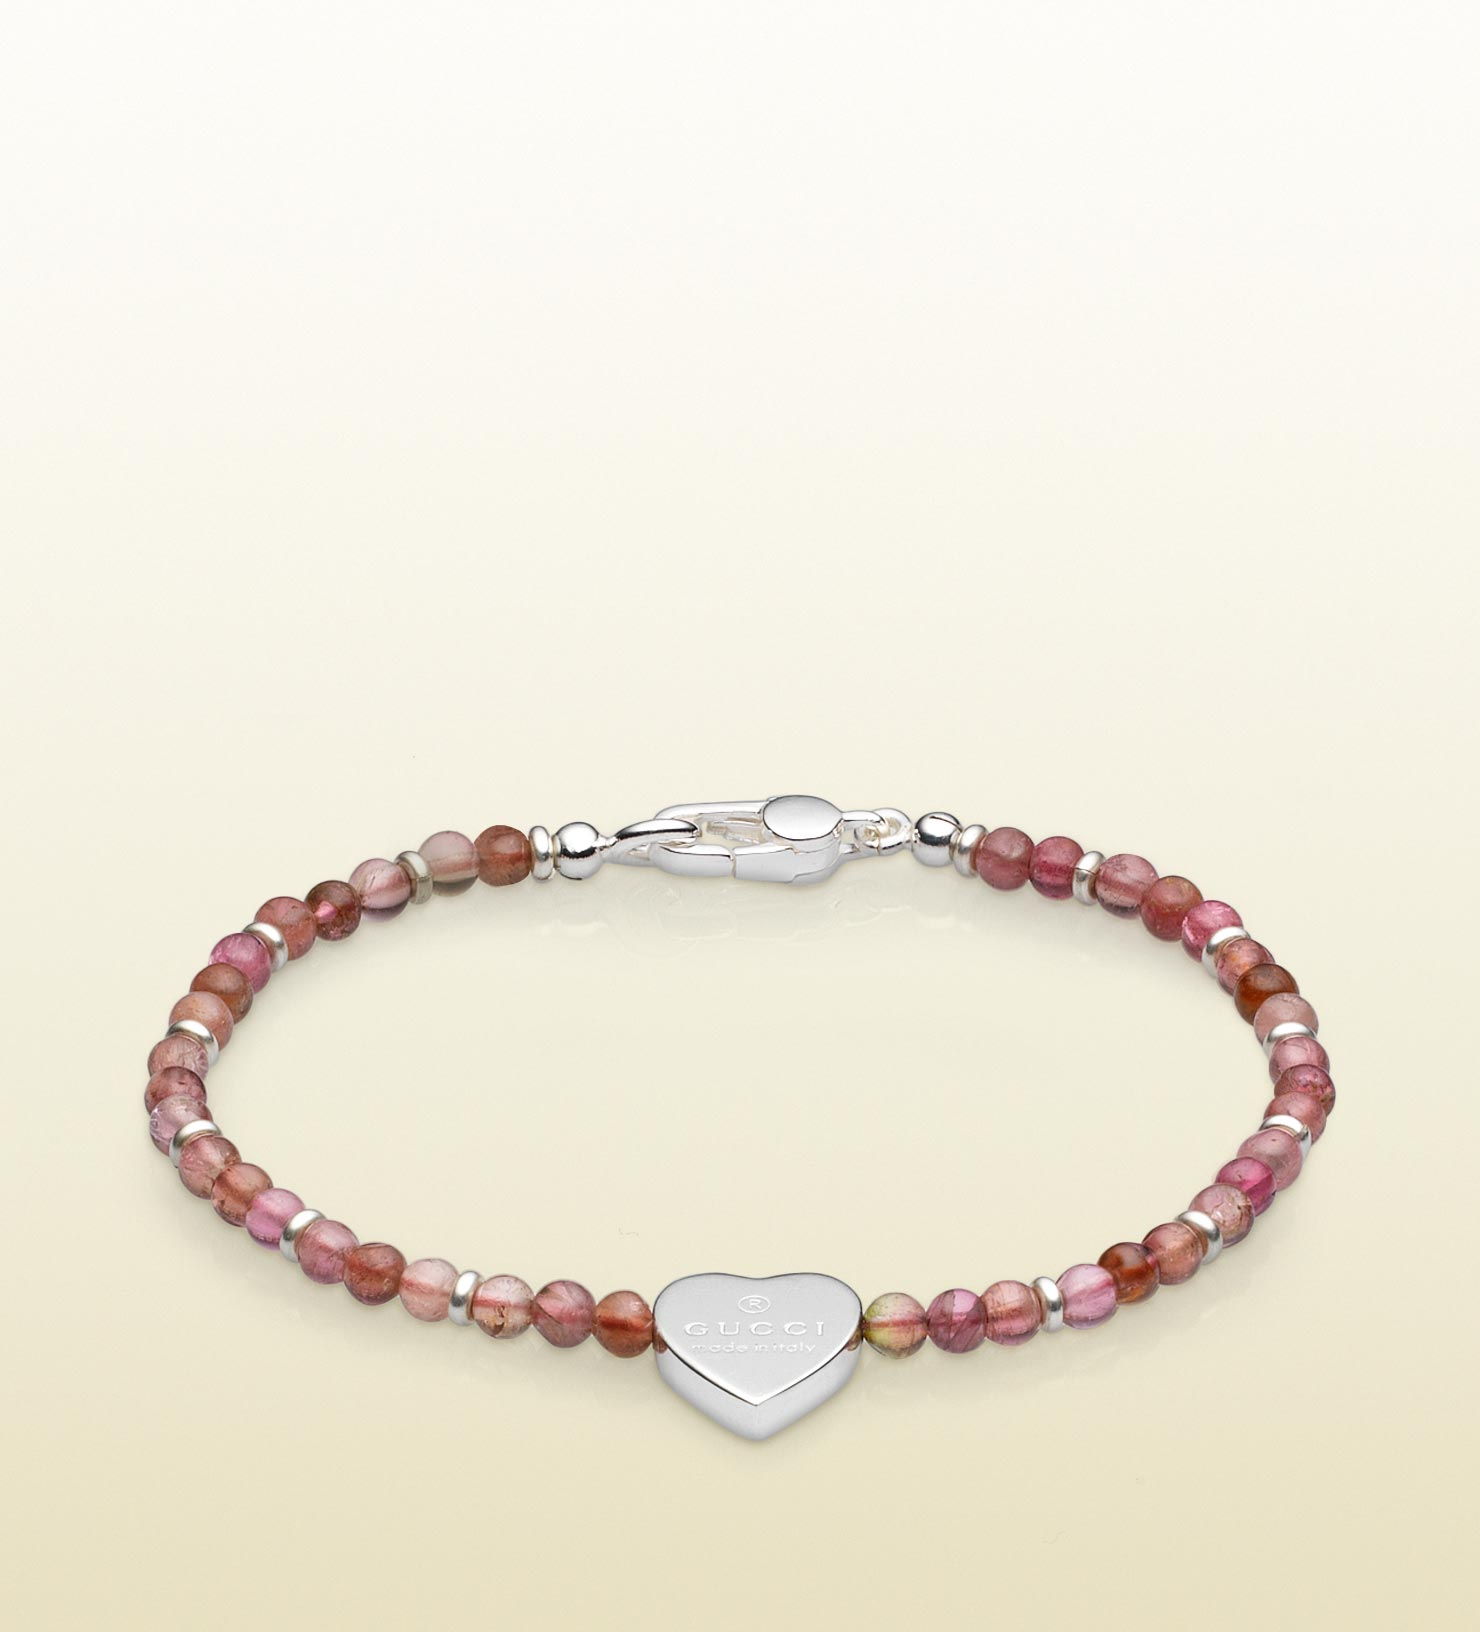 6d4f5d703 Gucci Heart Charm Beads Bracelet in Metallic - Lyst